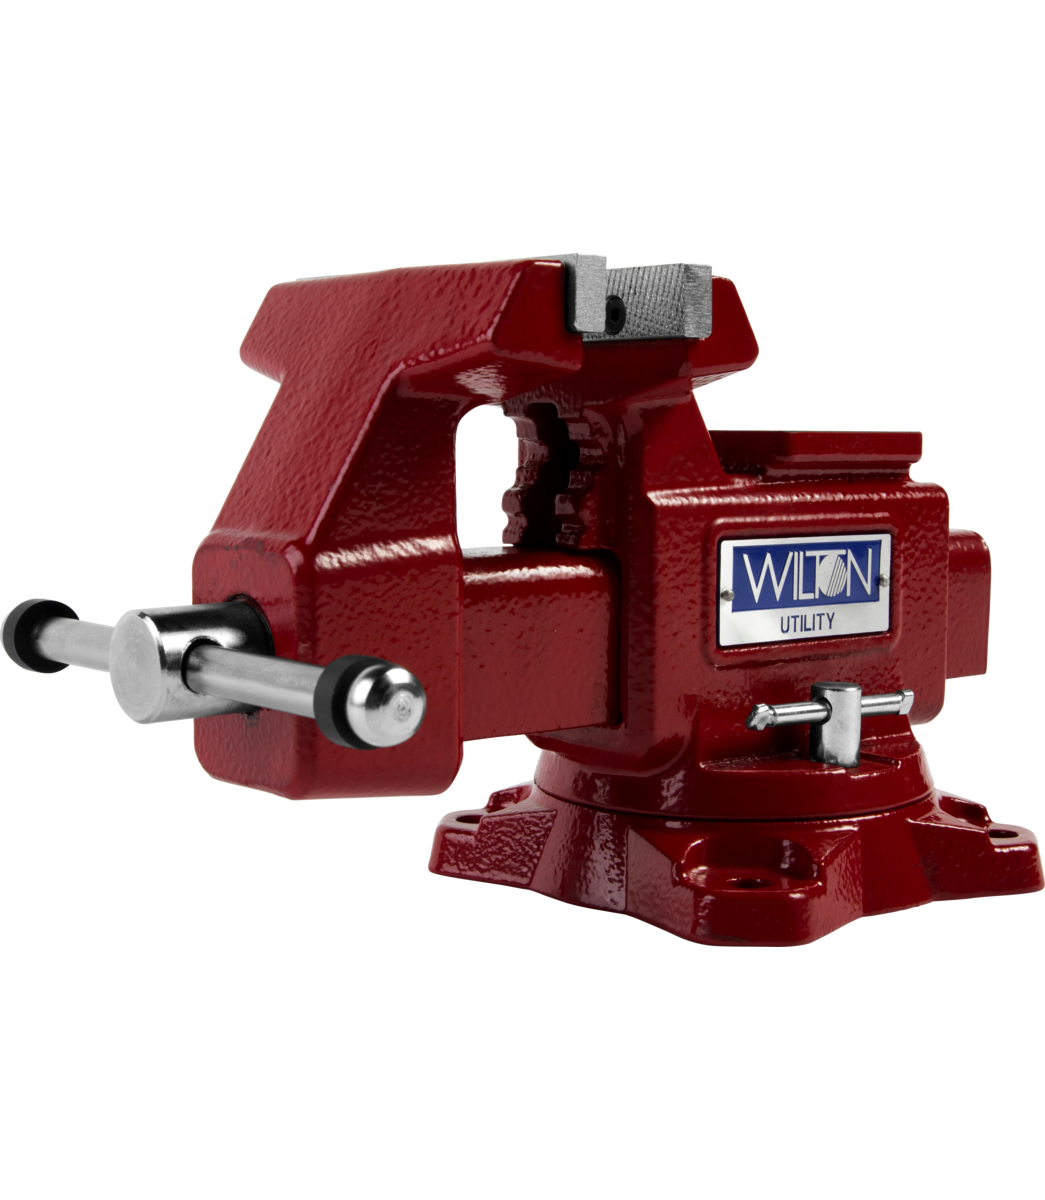 "Manual: Utility Bench Vise 4-1/2"" Jaw Width, 4"" Jaw Opening, 360° Swivel Base"